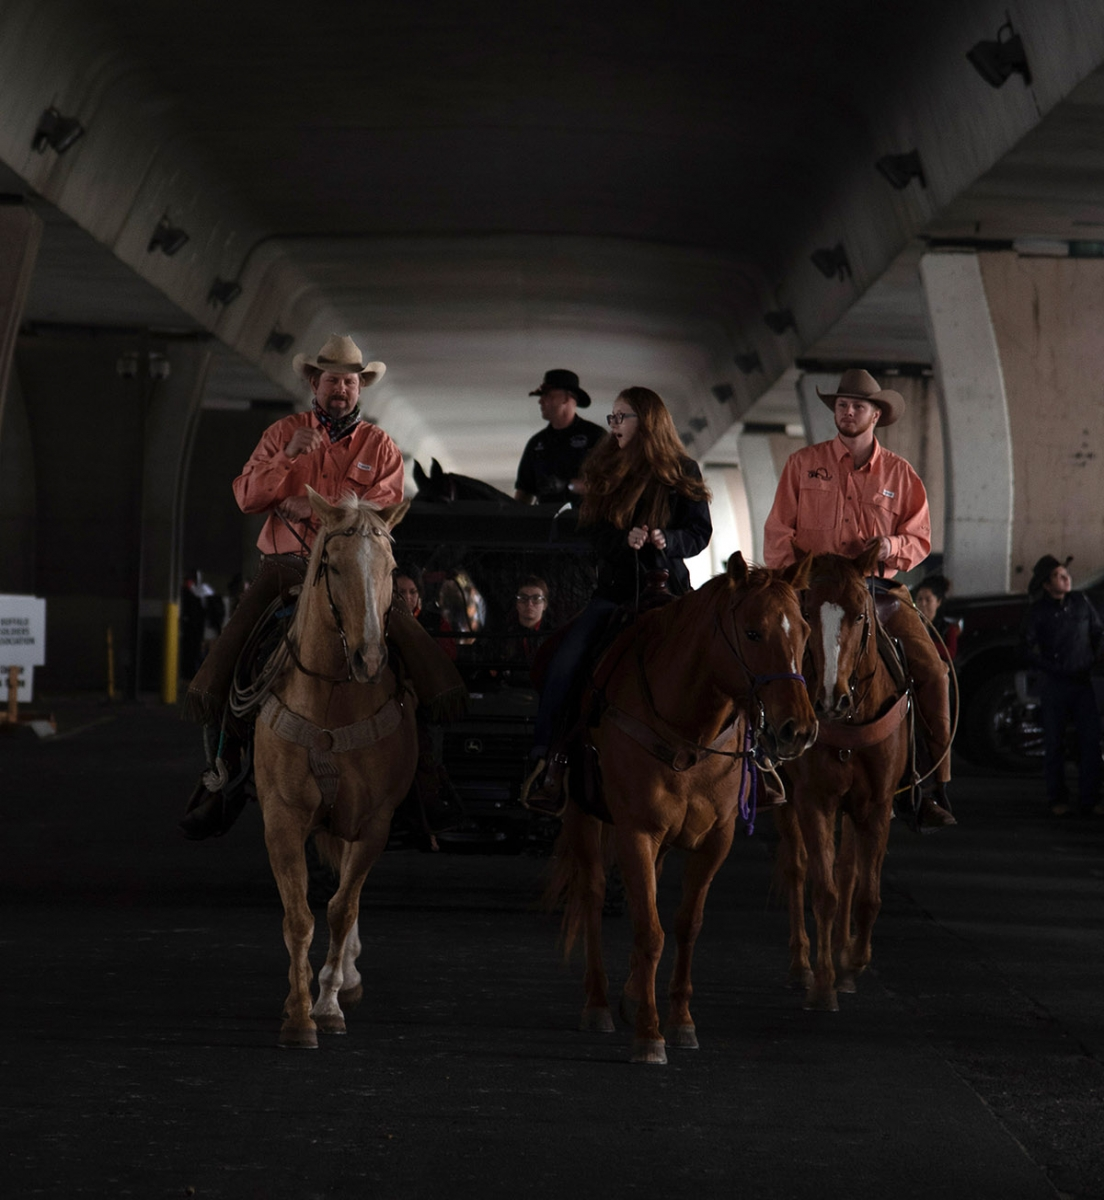 Participants wait before the Western Heritage Parade and Cattle Drive Feb. 2 under I-35 at Houston St. <em><b>V. Finster | Heron</b></em>